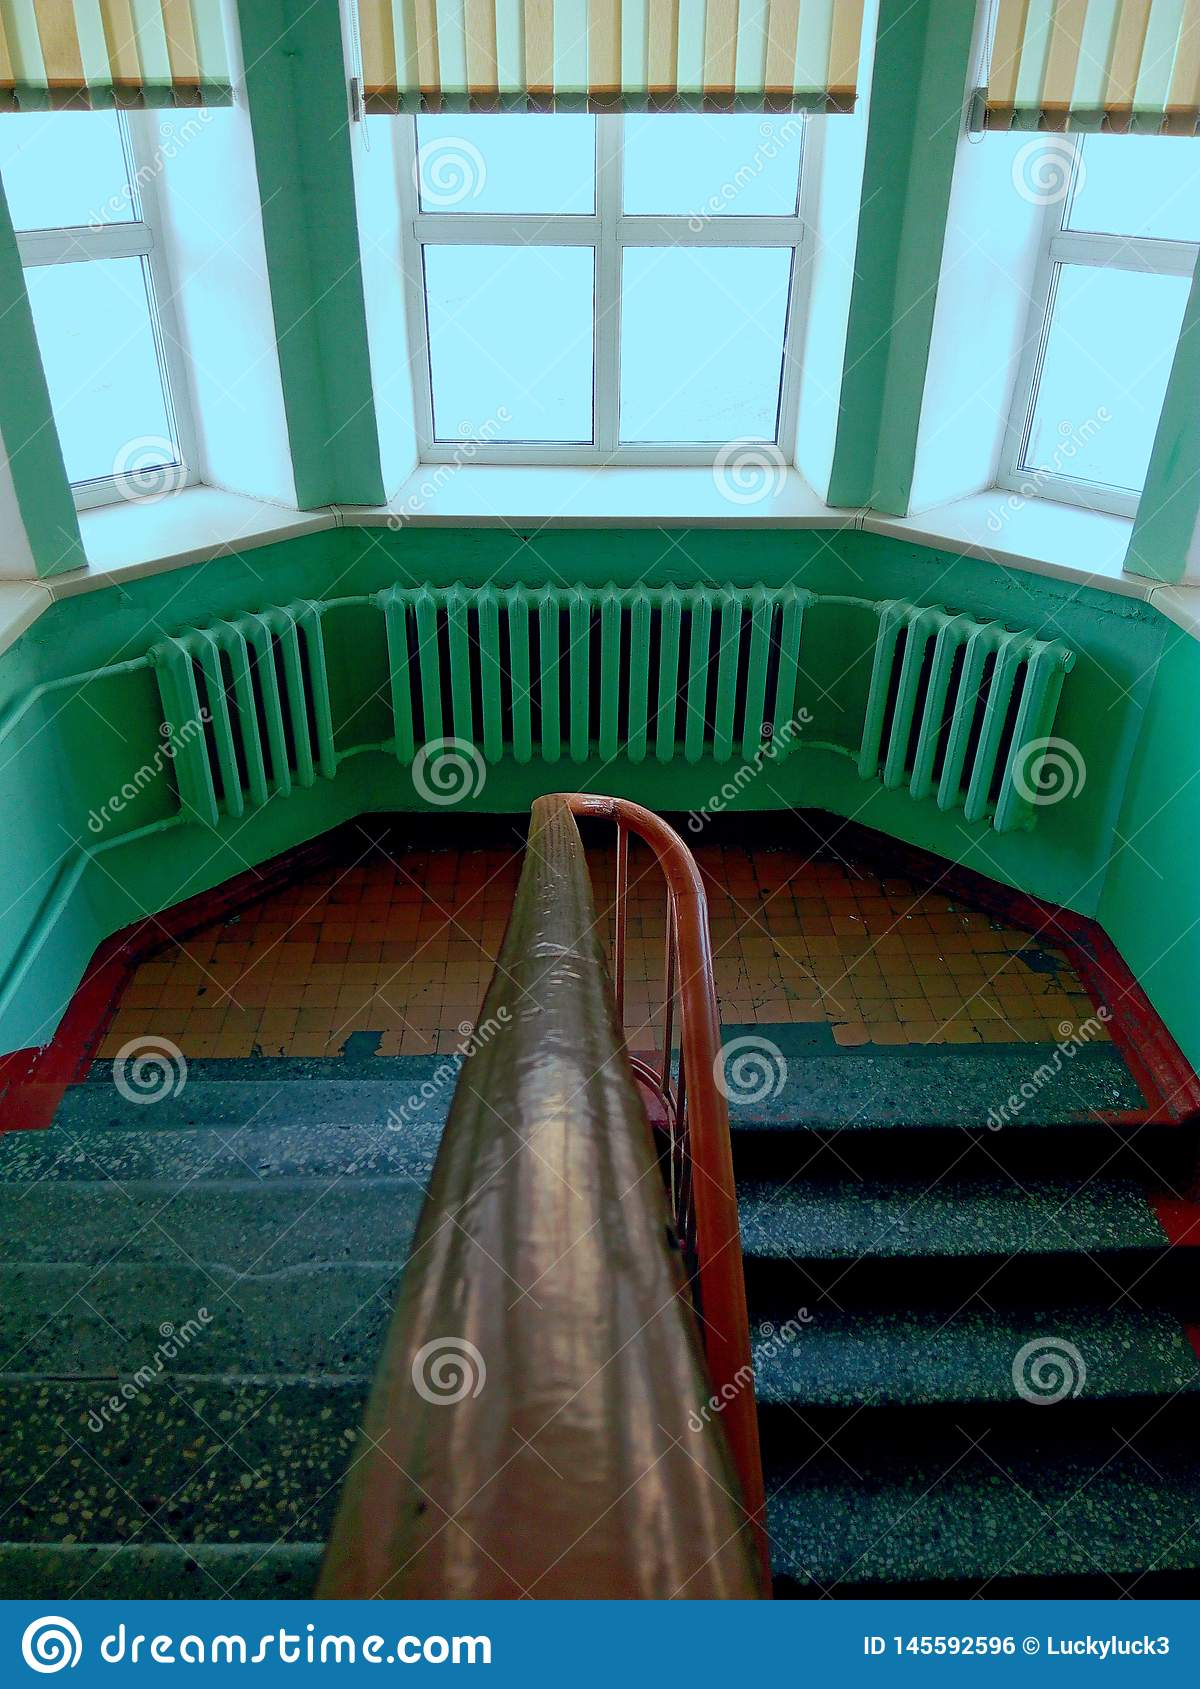 Staircase of an old orphanage.